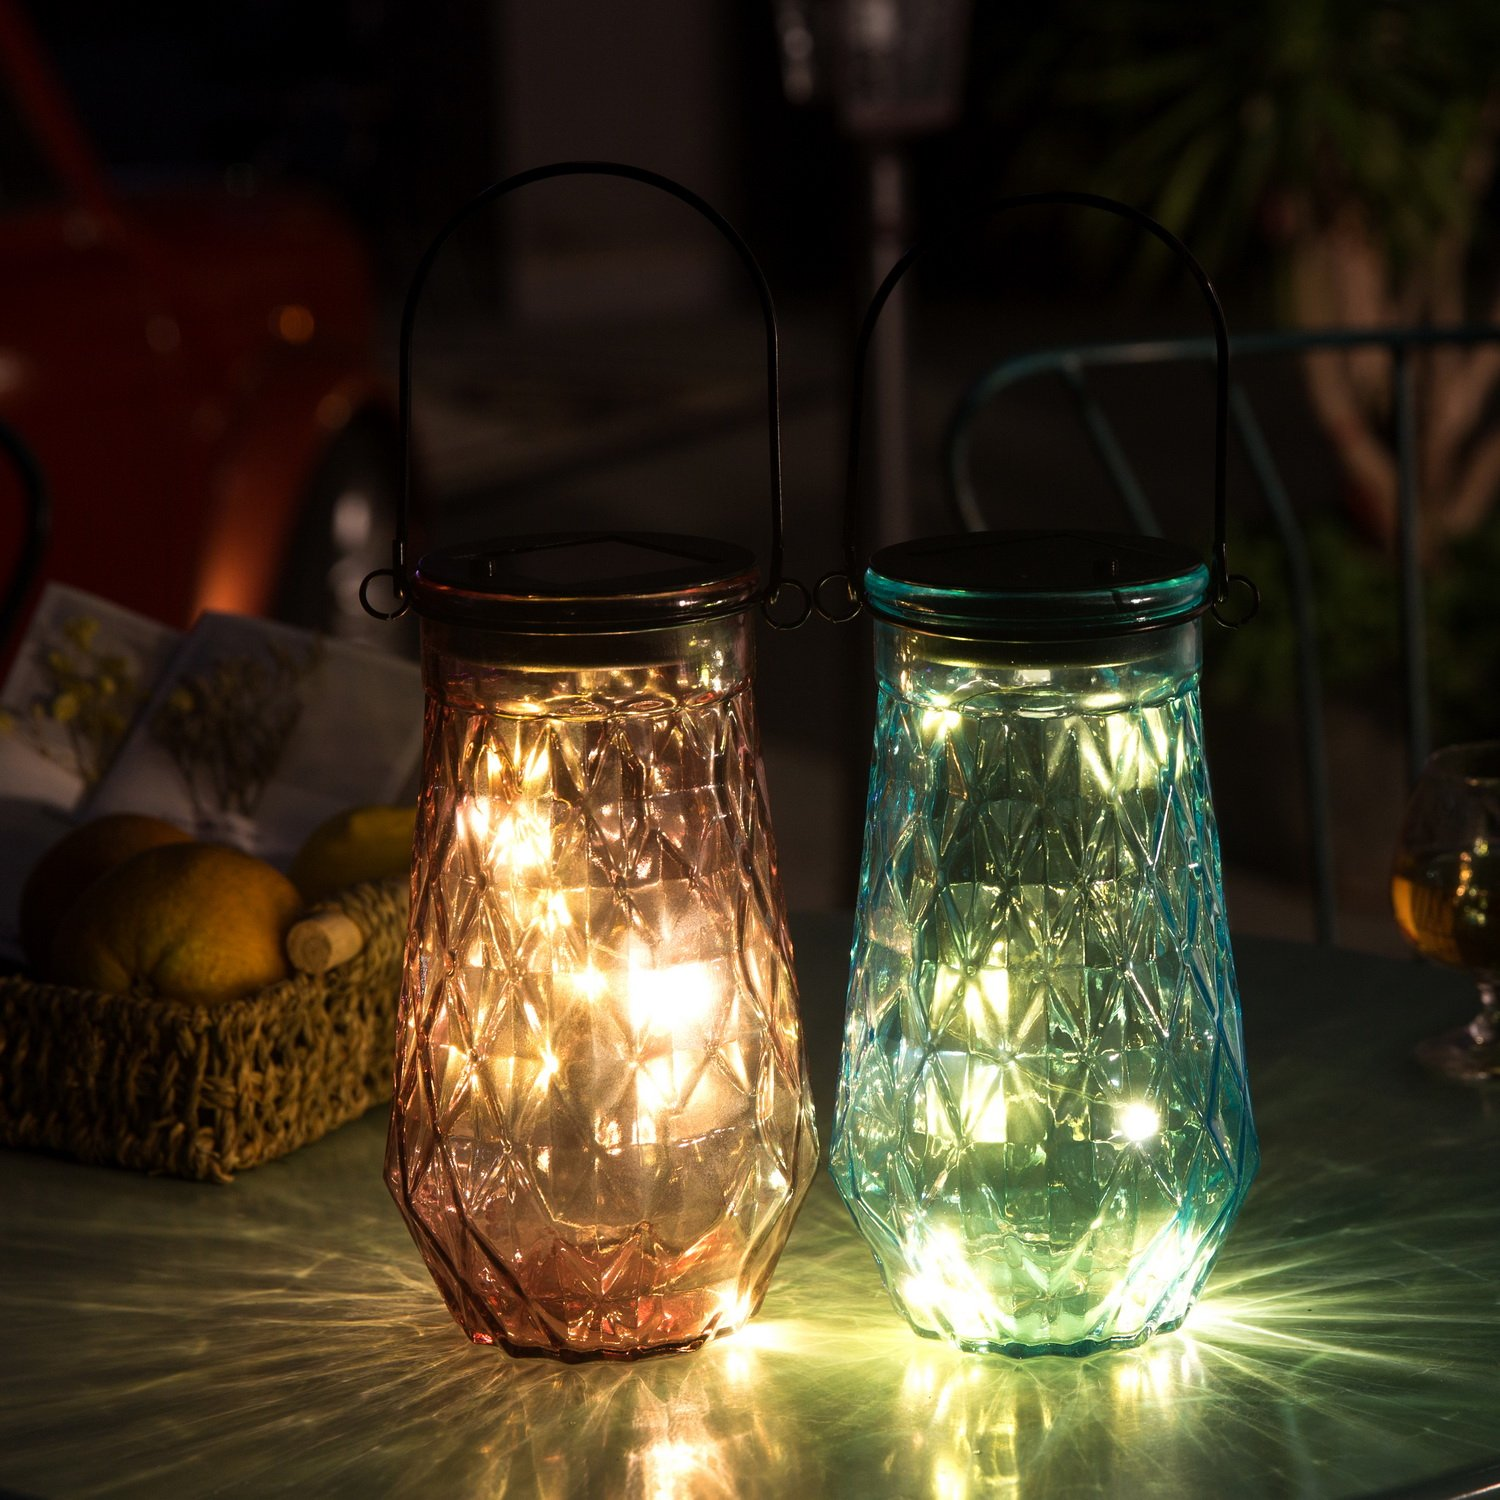 Solar Mason Jar Outdoor Decorative Glass- BroGarden Cute Table Light (Blue)2 Packs